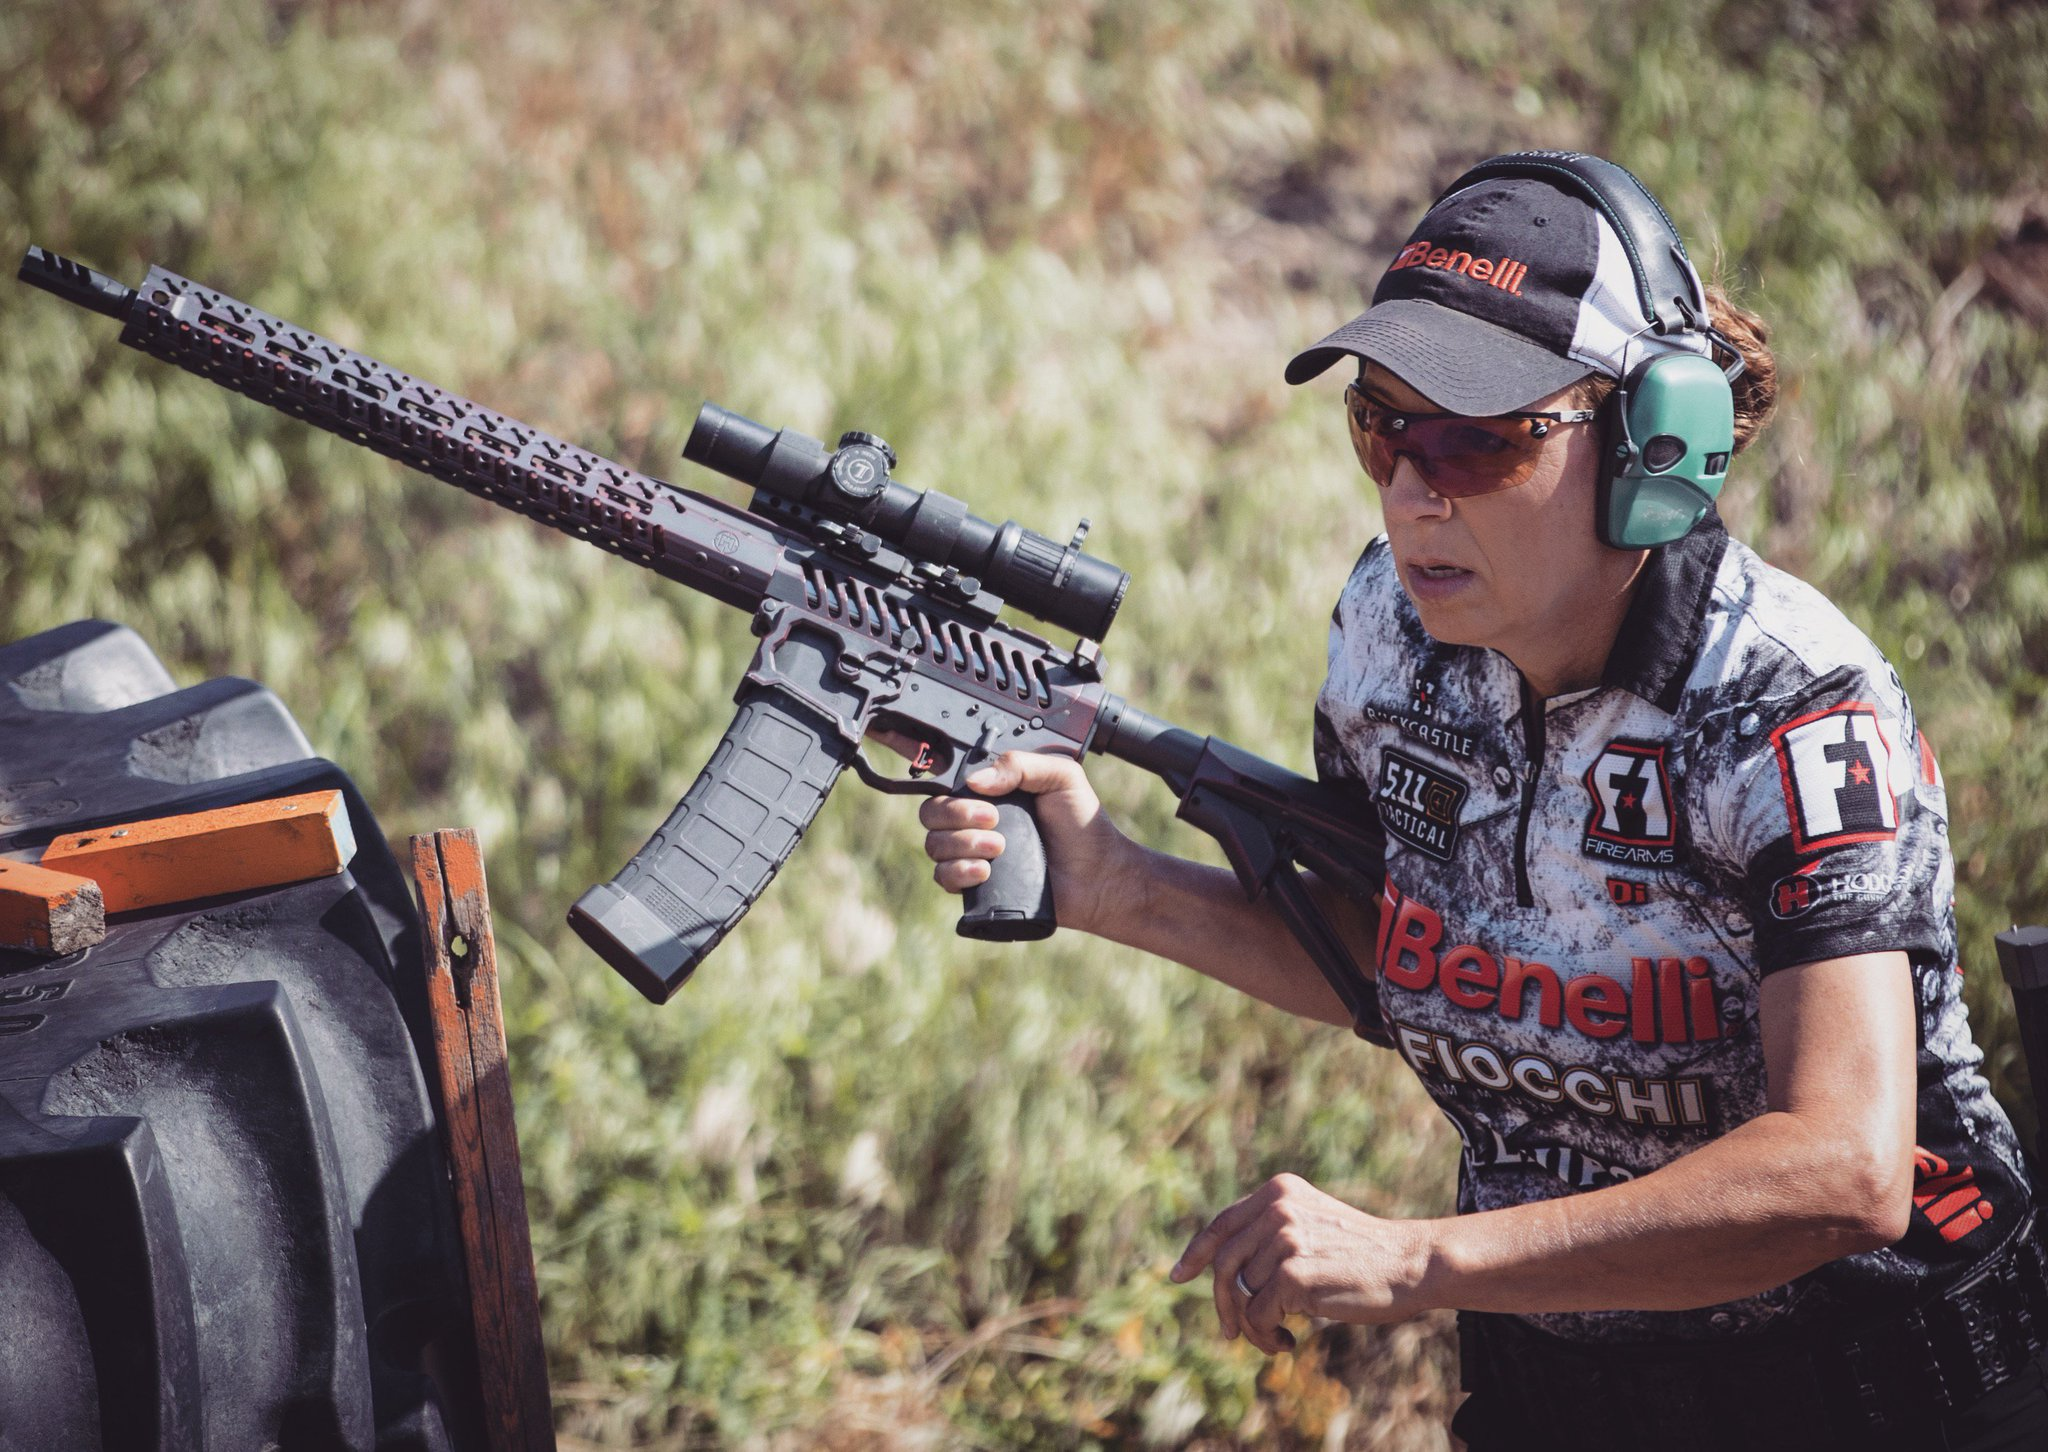 LifeZette: Women Love Shooting Responsibly, and They're Here to Stay